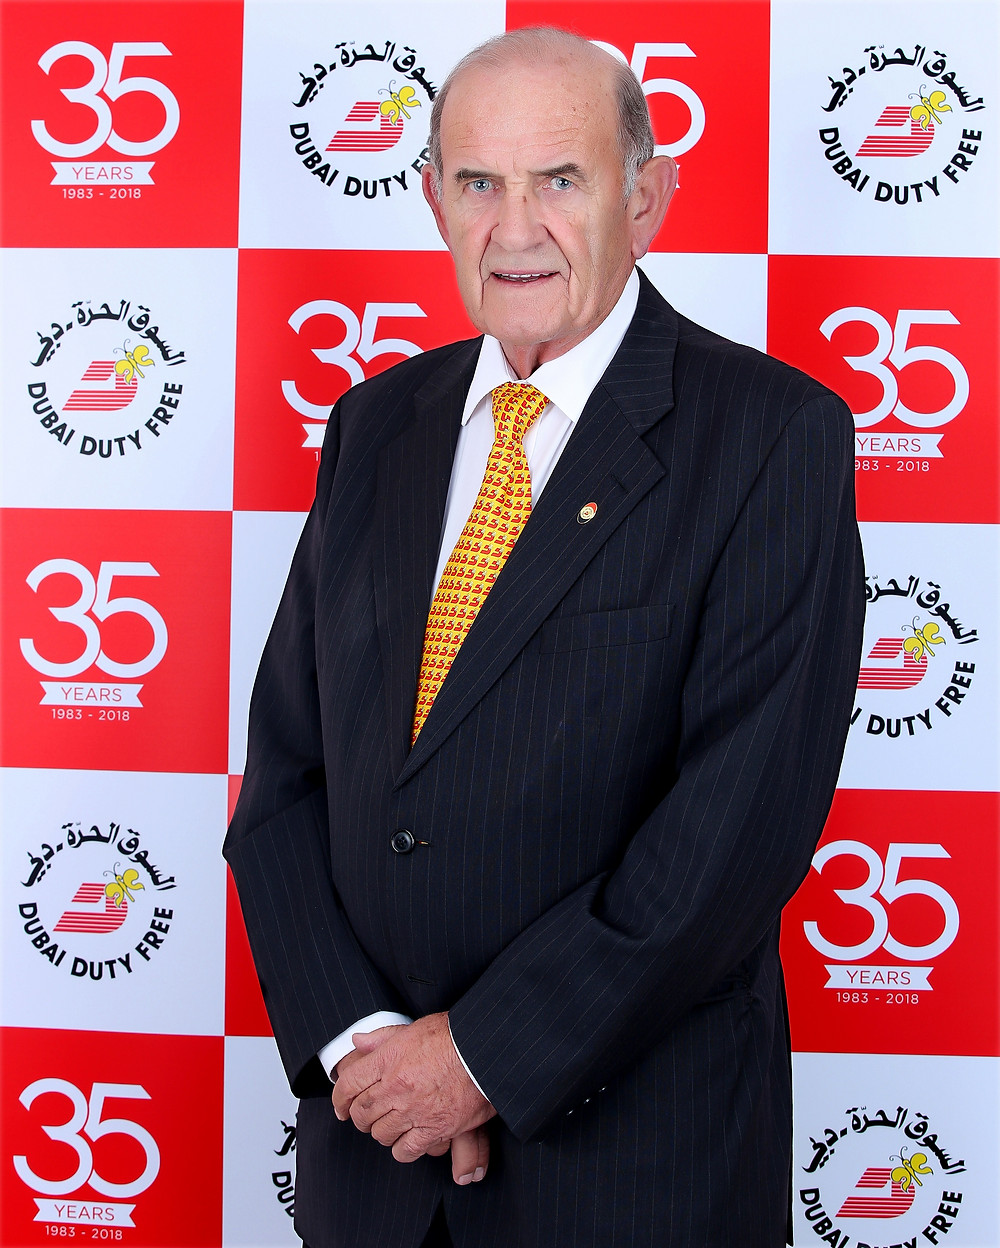 Colm McLoughlin, Executive Vice Chairman & CEO of Dubai Duty Free